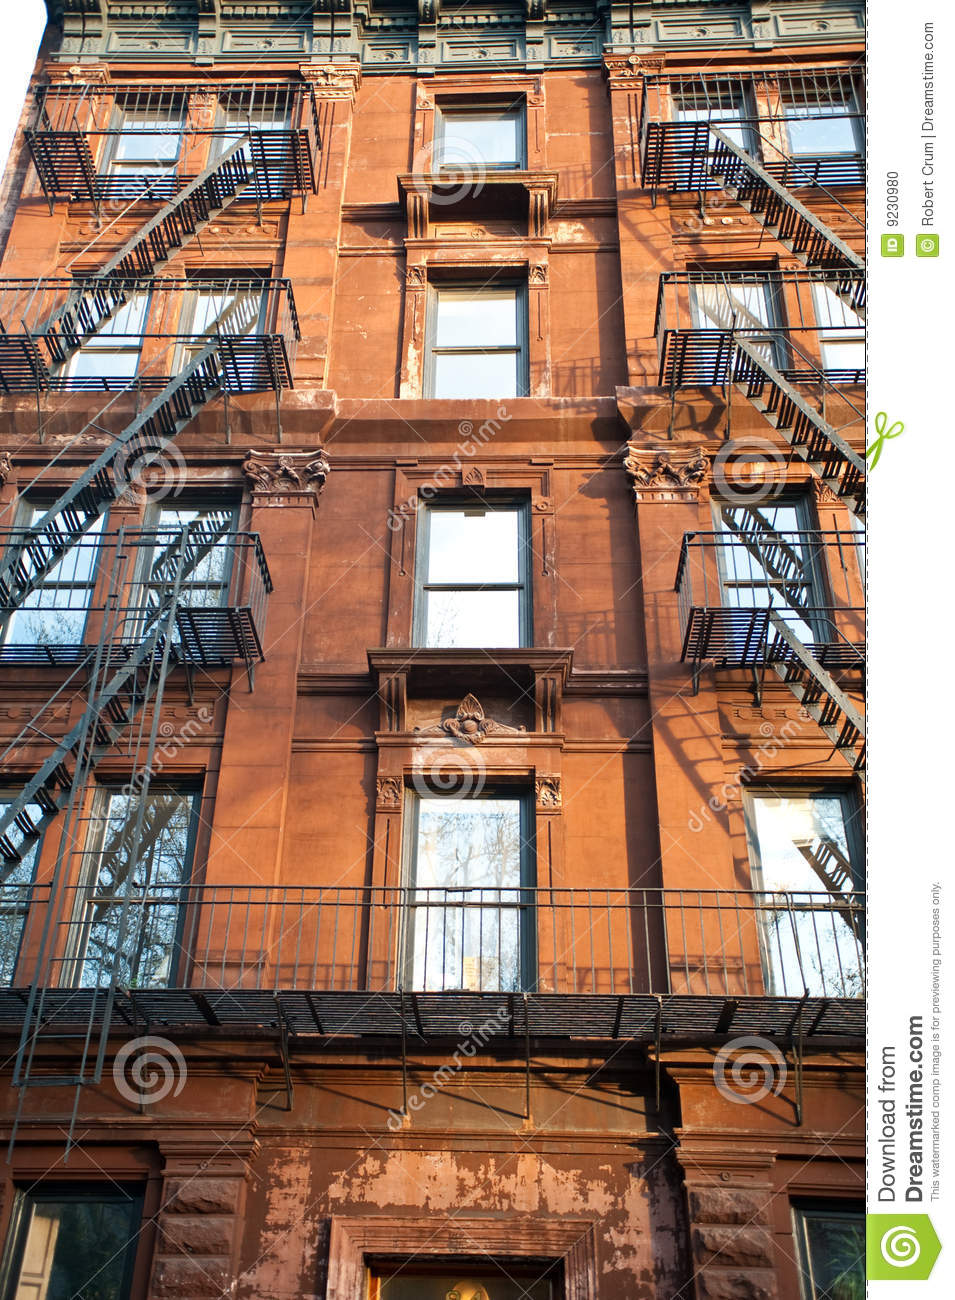 Old Apartment Buildings Stock Photo - Image: 9230980